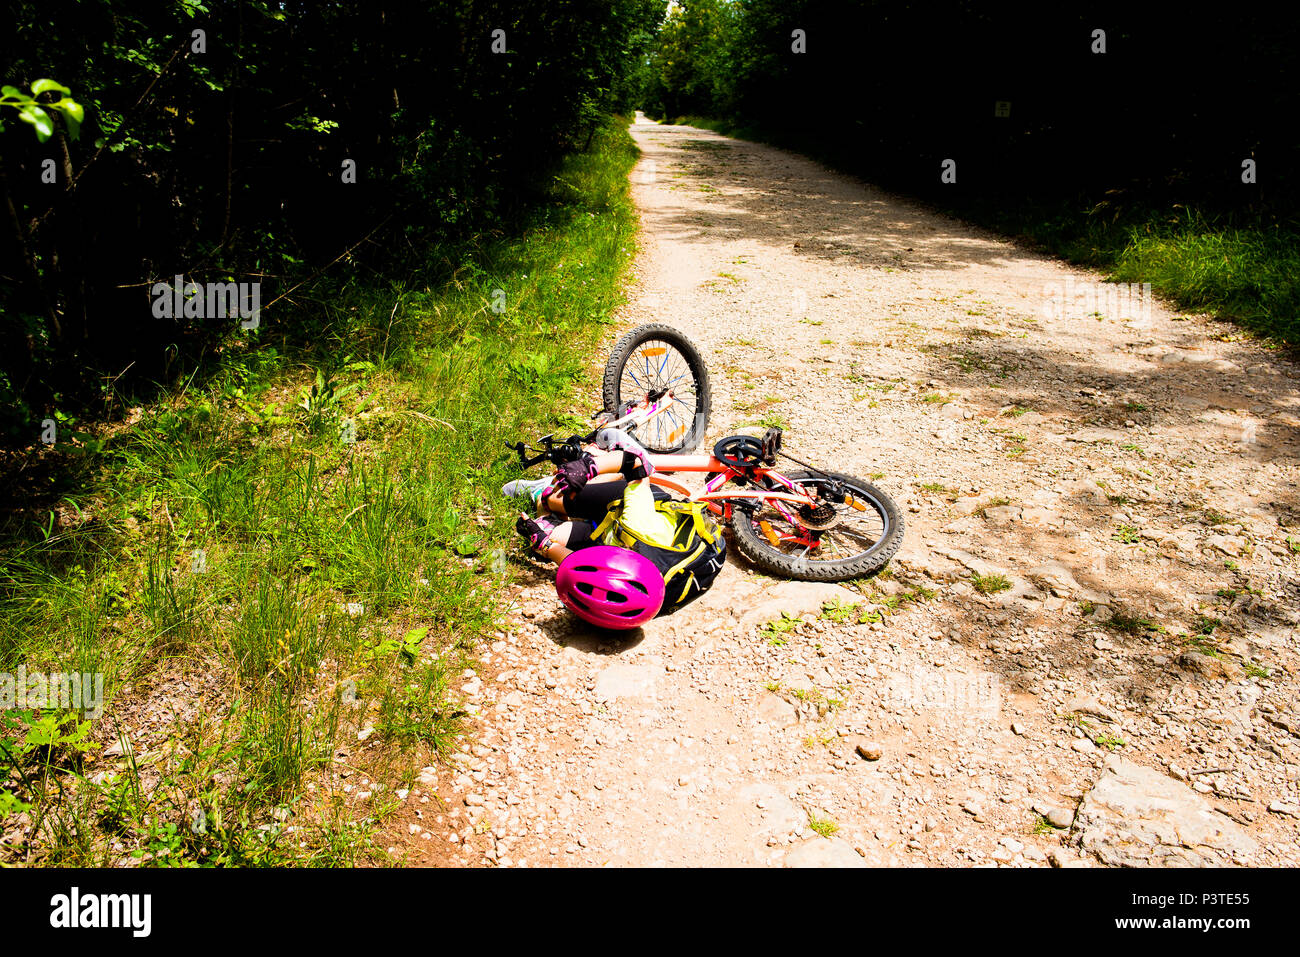 Little girl falling off her bicycle - Stock Image